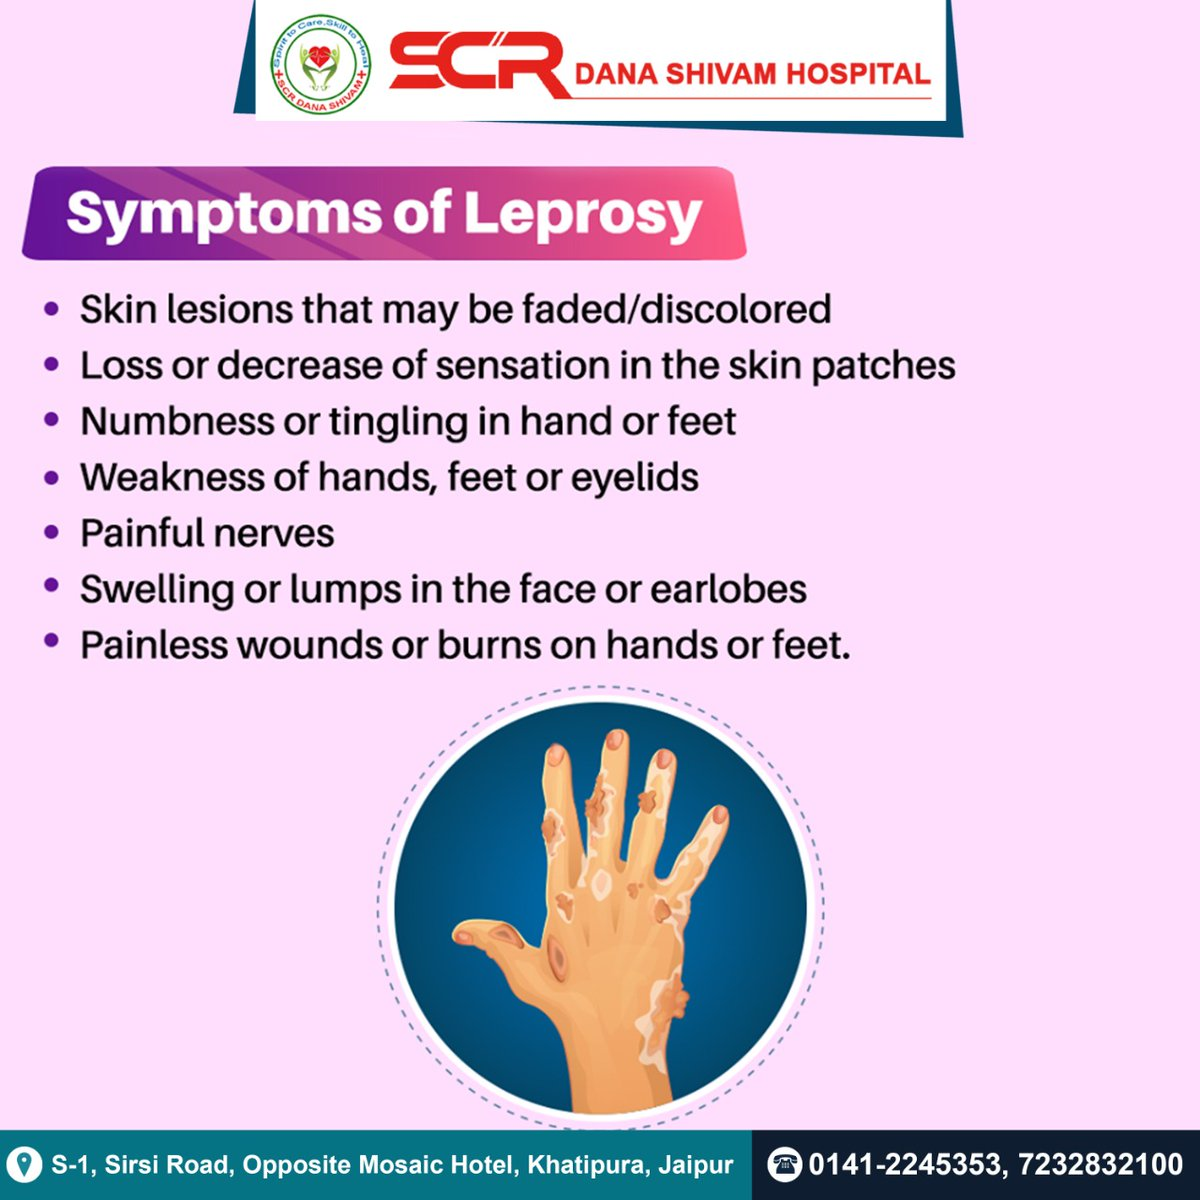 Symptoms of leprosy  - Skin lesions that may be faded/discoloured - loss or decrease of sensation in the skin patches - numbness or tingling in hand or feet  #Leprosy  #HealthyLiving  #healthcareforall  #healthtips   #SCRDanaShivam  #healthcare    @WHO  @ihissues  @NHPINDIA  @MoHFW_INDIA